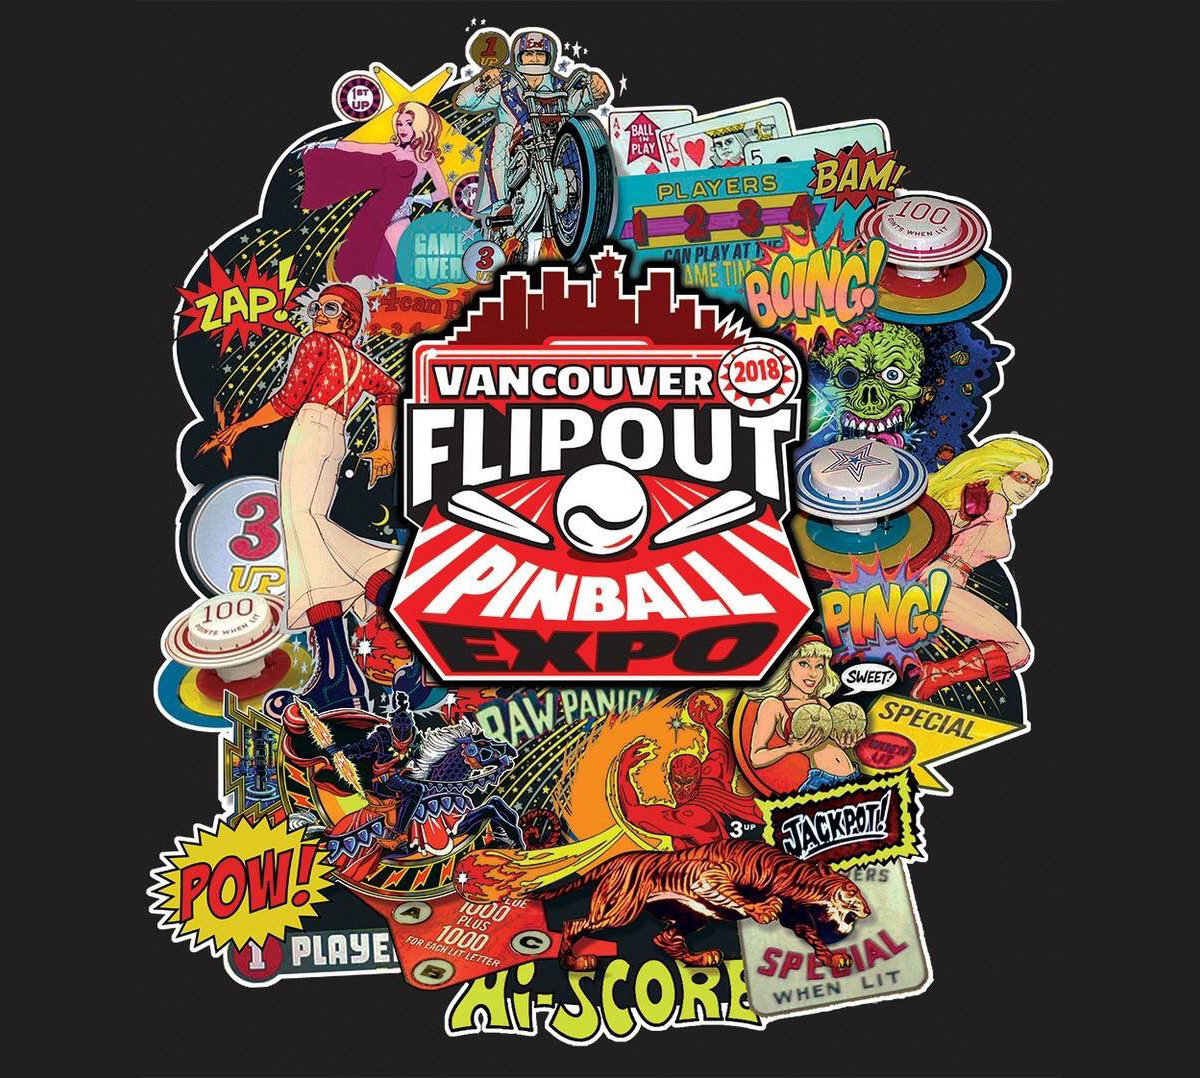 See Houdini in Action at Vancouver FlipOut: Sept 7-9